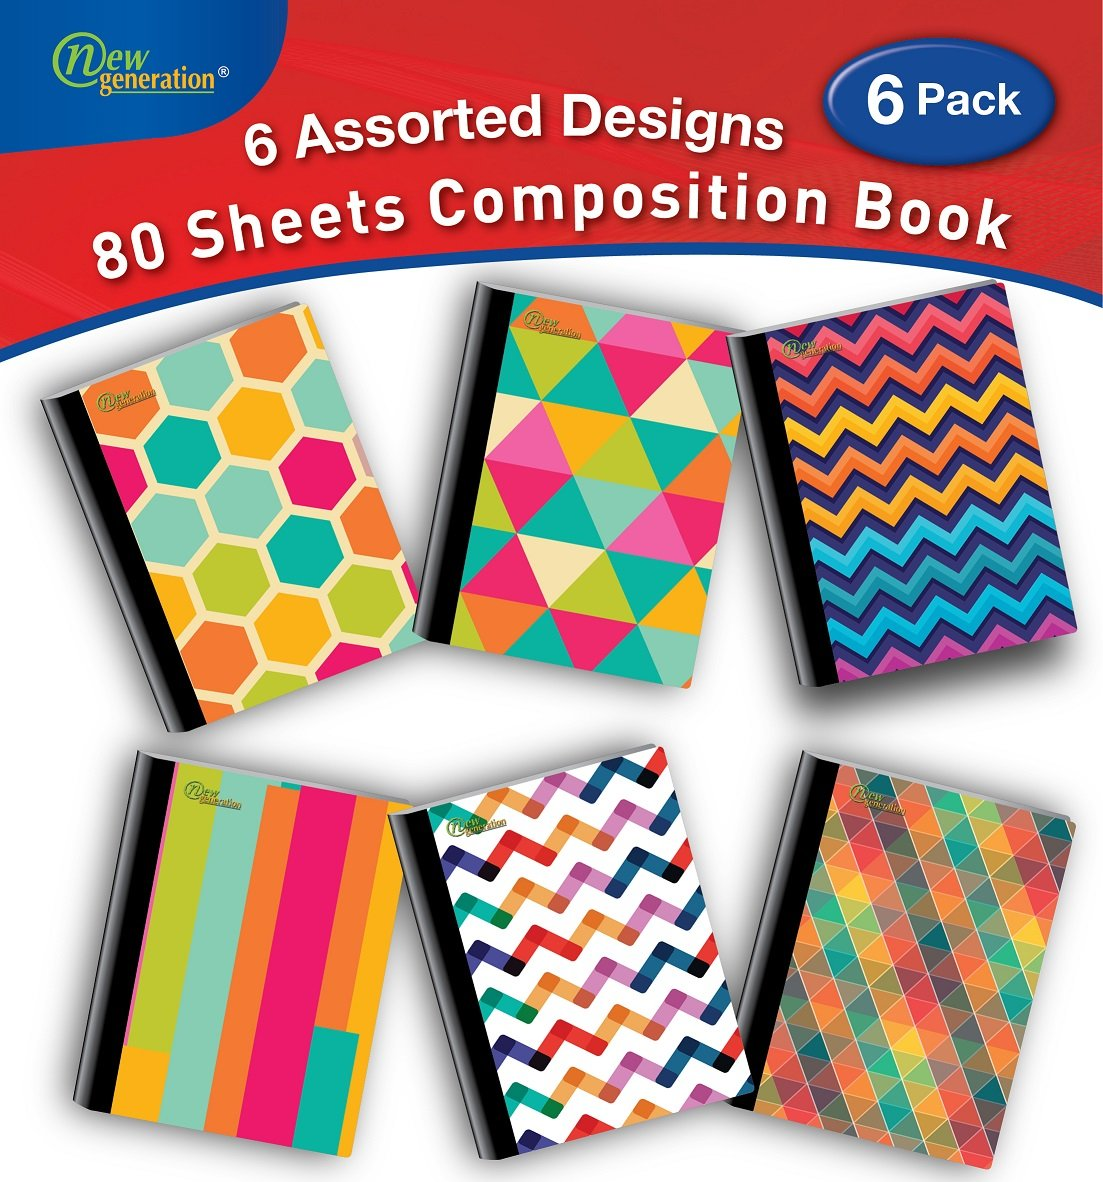 New Generation - Pattern - Composition Book, 6 Pack, 80 Sheets / 160 Pages, 7.5 x 9.75 inches, Heavy Duty Laminated Hard Cover Back to School/Campus Supply. (6 Pack Composition NOTEBOOKS Wide Ruled)